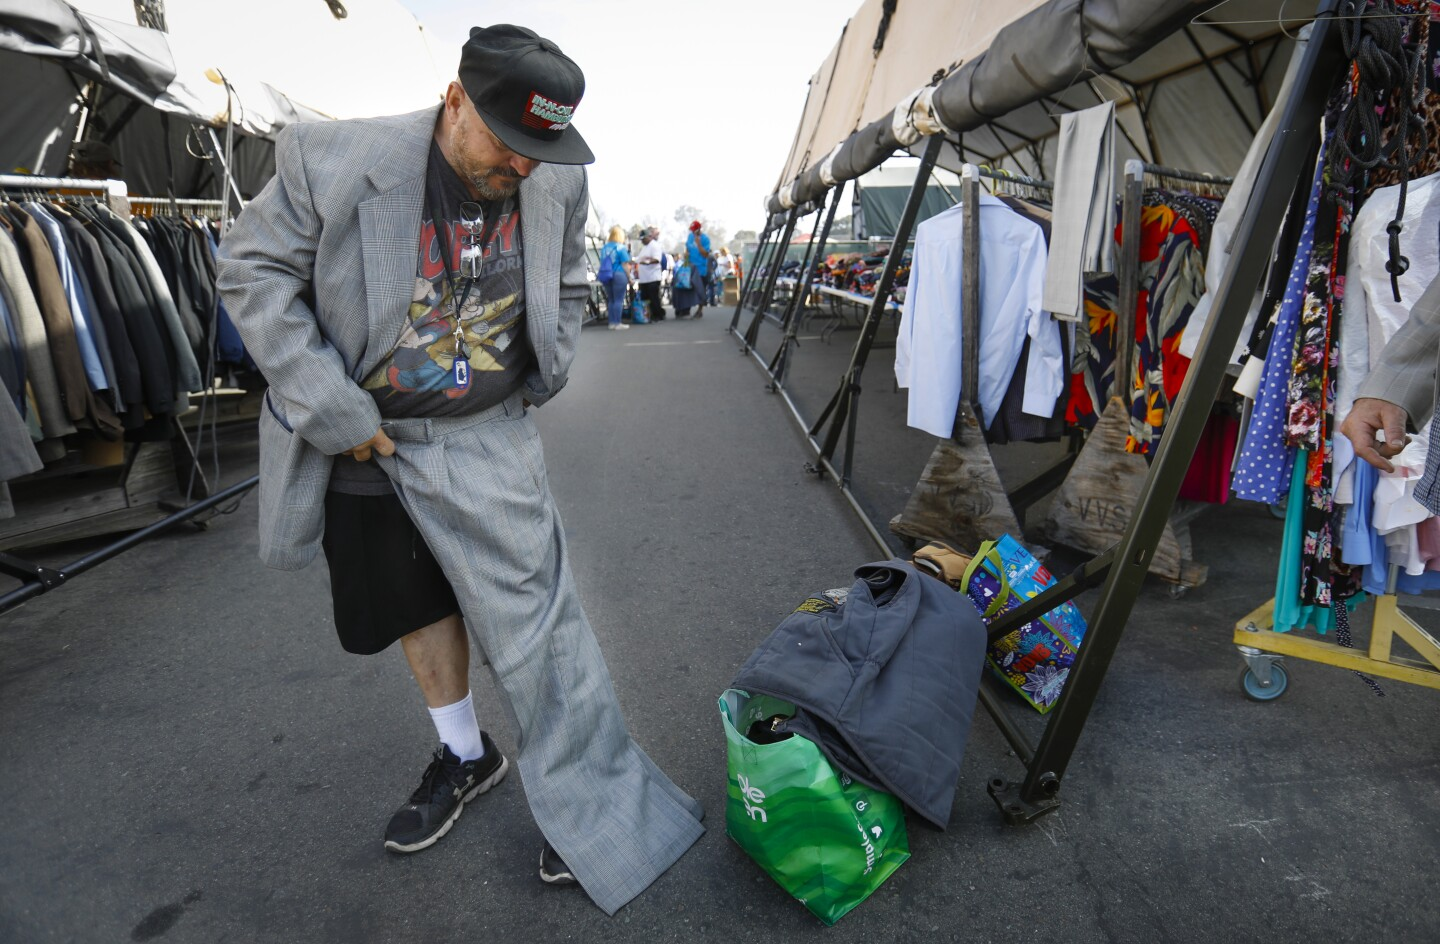 Annual three-day event helps homeless vets